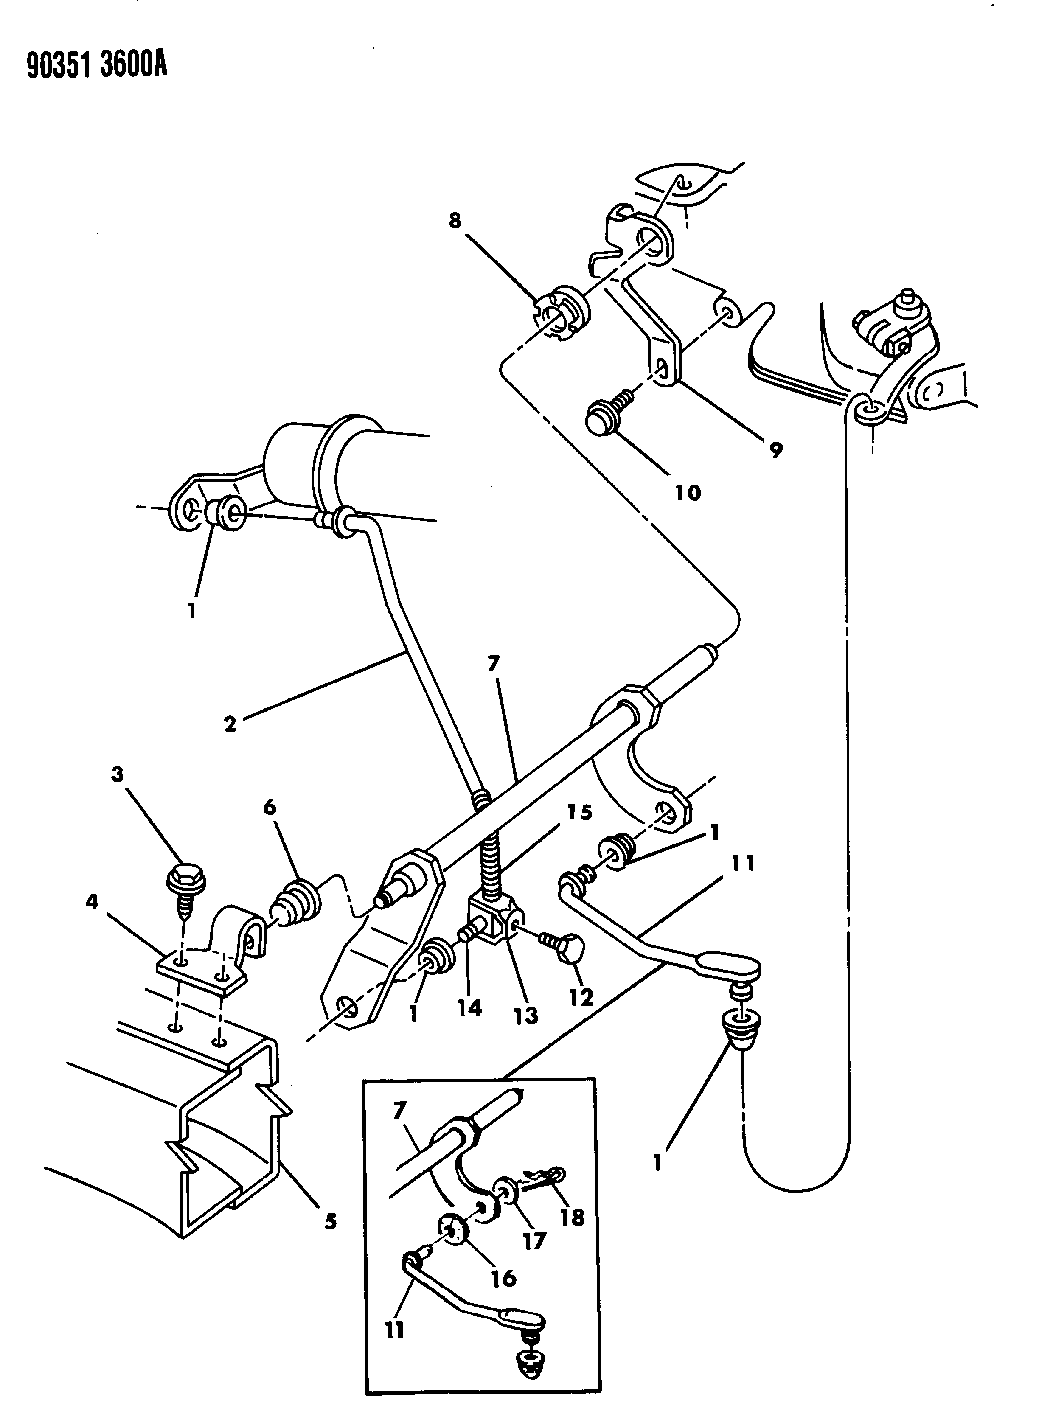 CN_6959] Ponents Parts For Dodge Dakota On 1992 Dodge Dakota Suspension Diagram  Schematic WiringDupl Rine Inifo Pap Mohammedshrine Librar Wiring 101